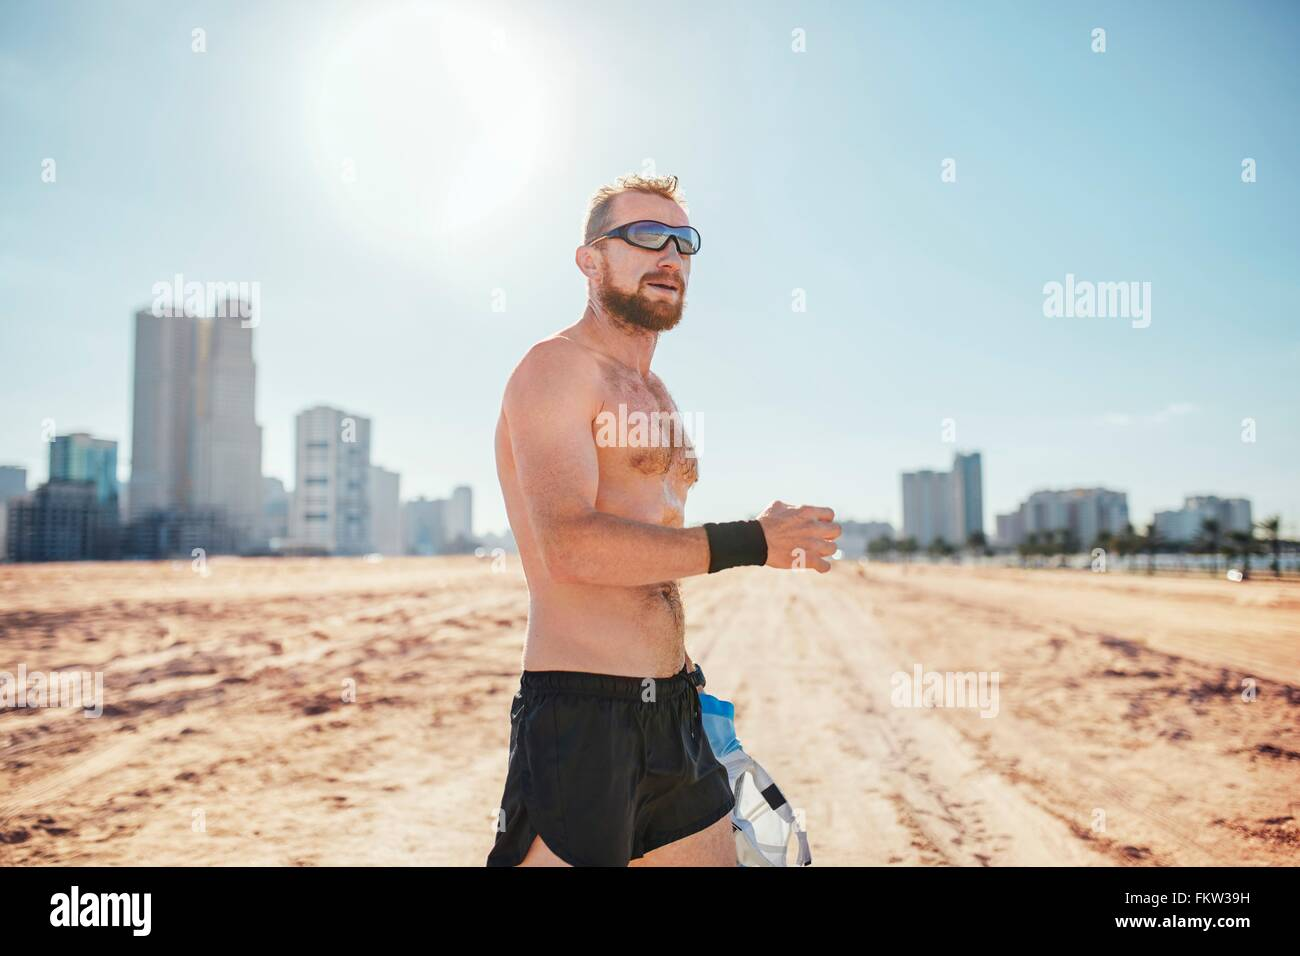 Barechested man on sand wearing sunglasses by skyscrapers, Dubai, United Arab Emirates - Stock Image